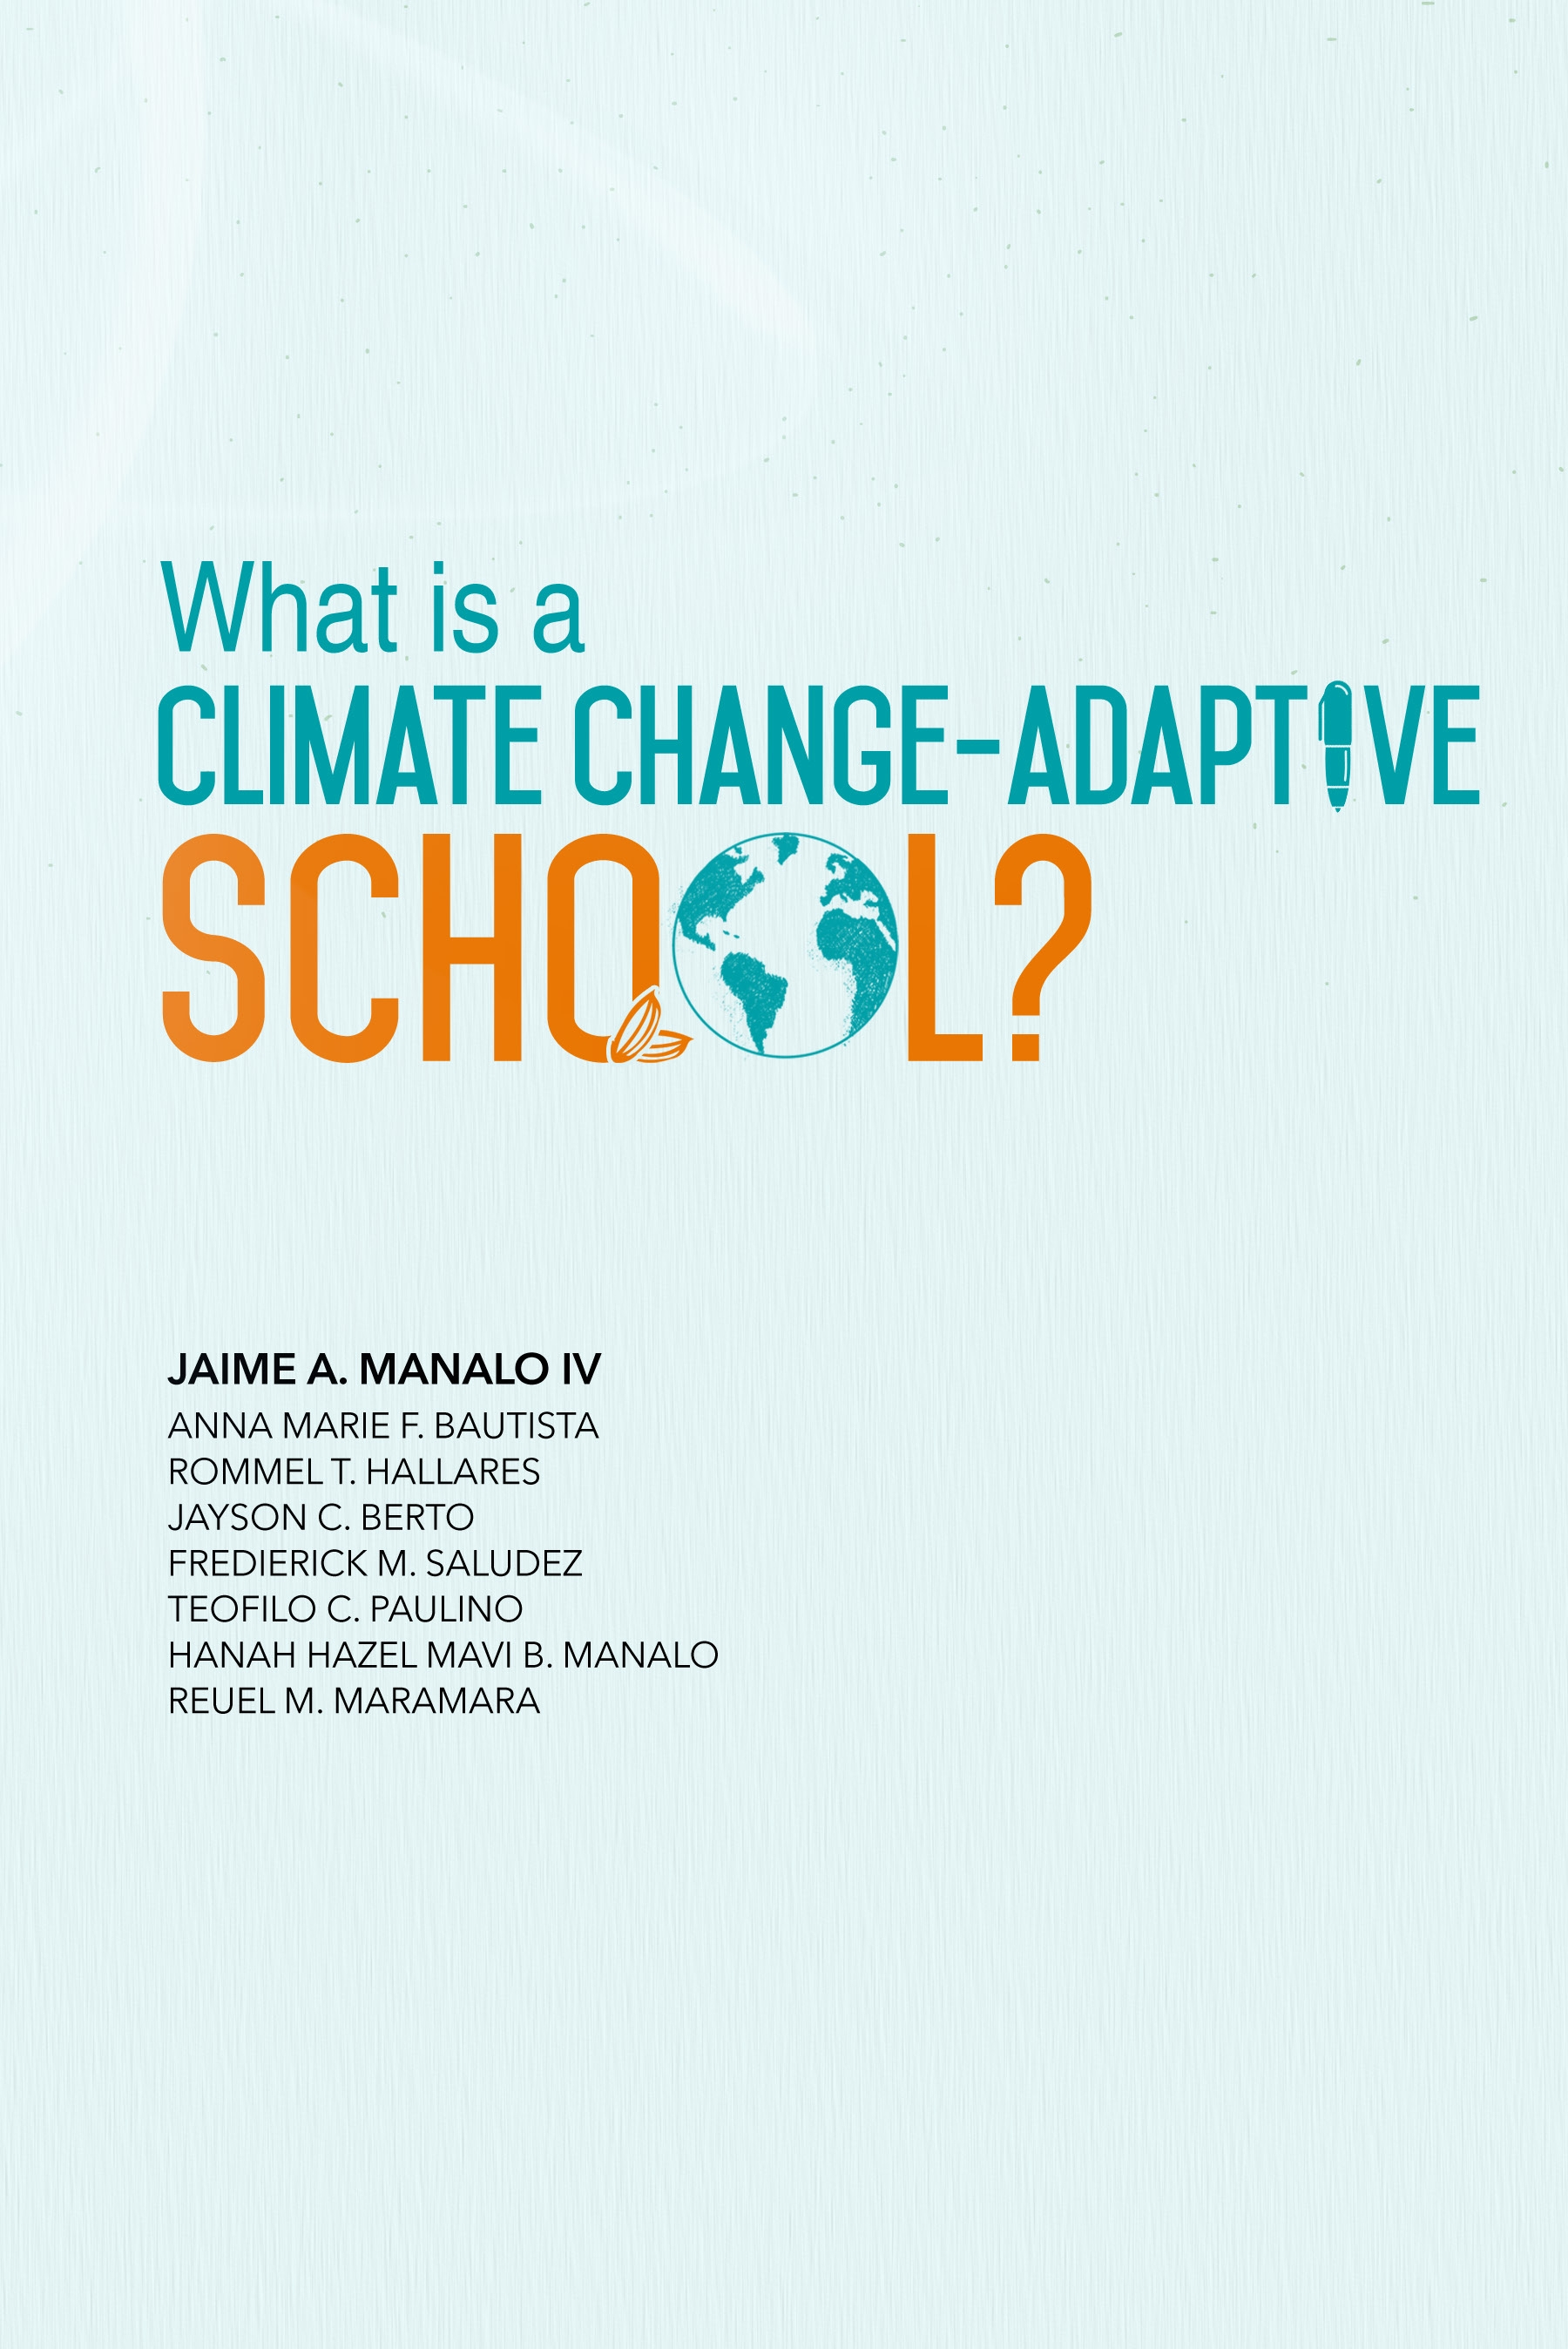 What is a Climate Change-Adaptive School?